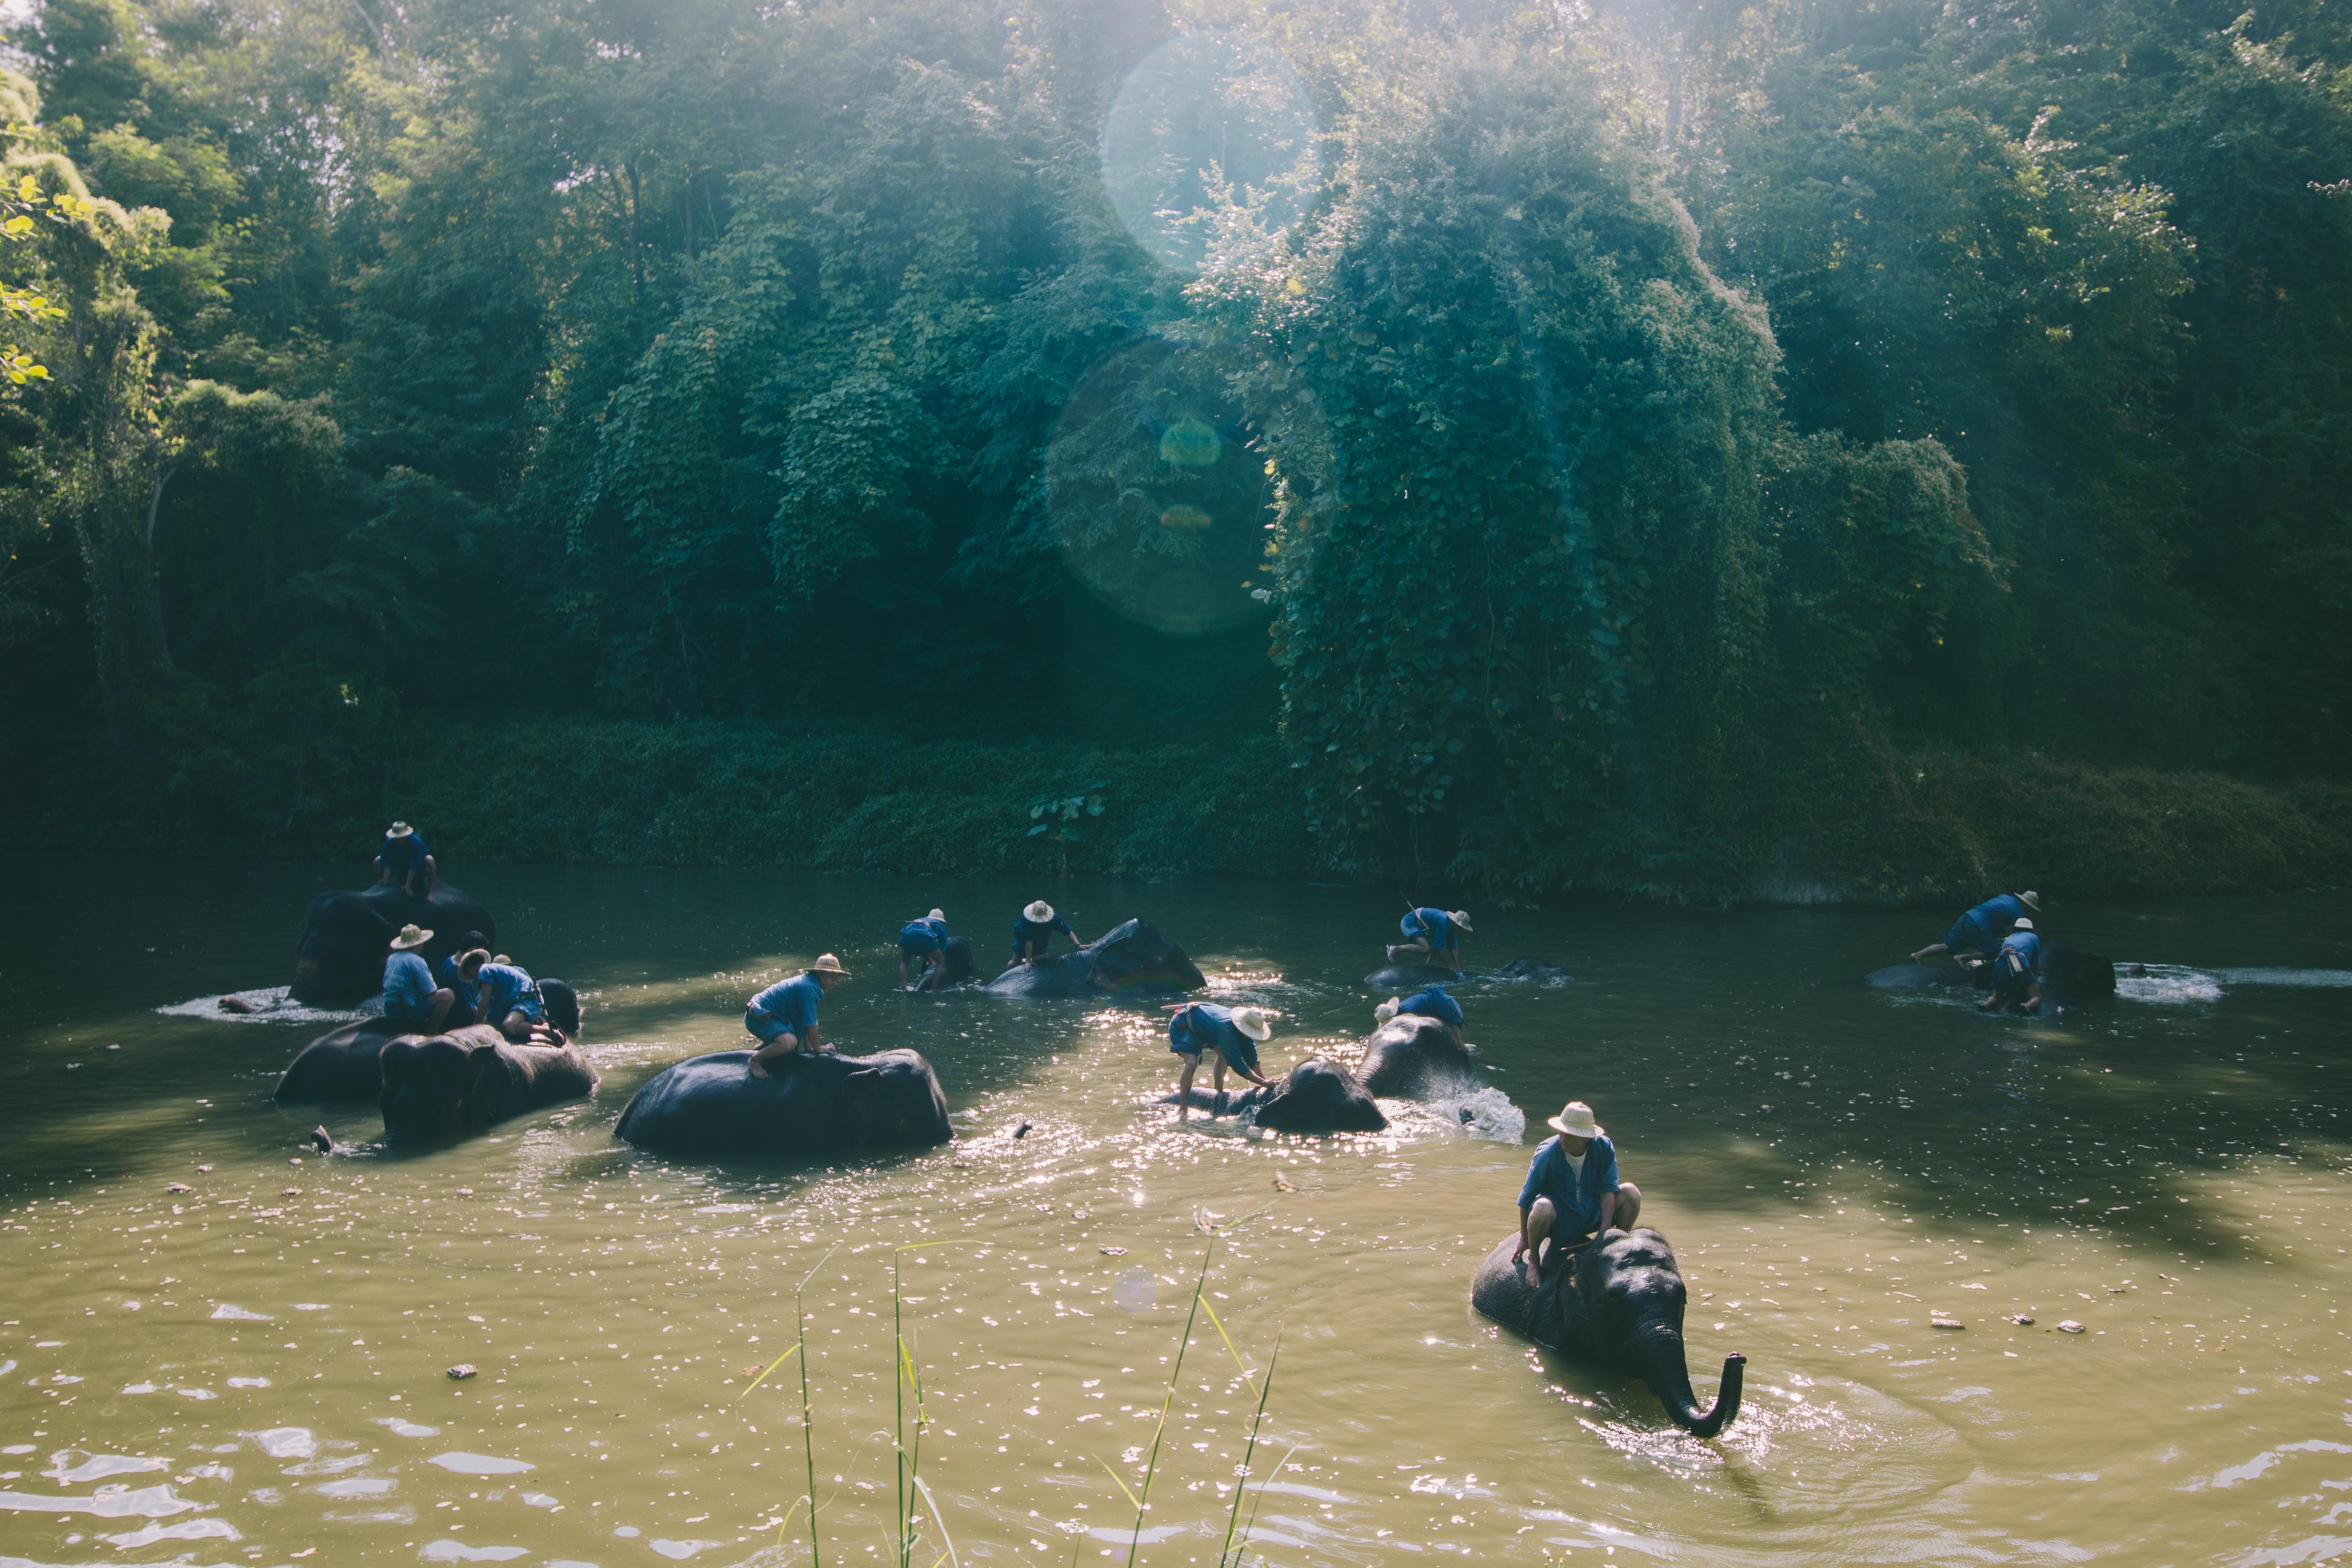 photo of people riding elephants crossing body of water